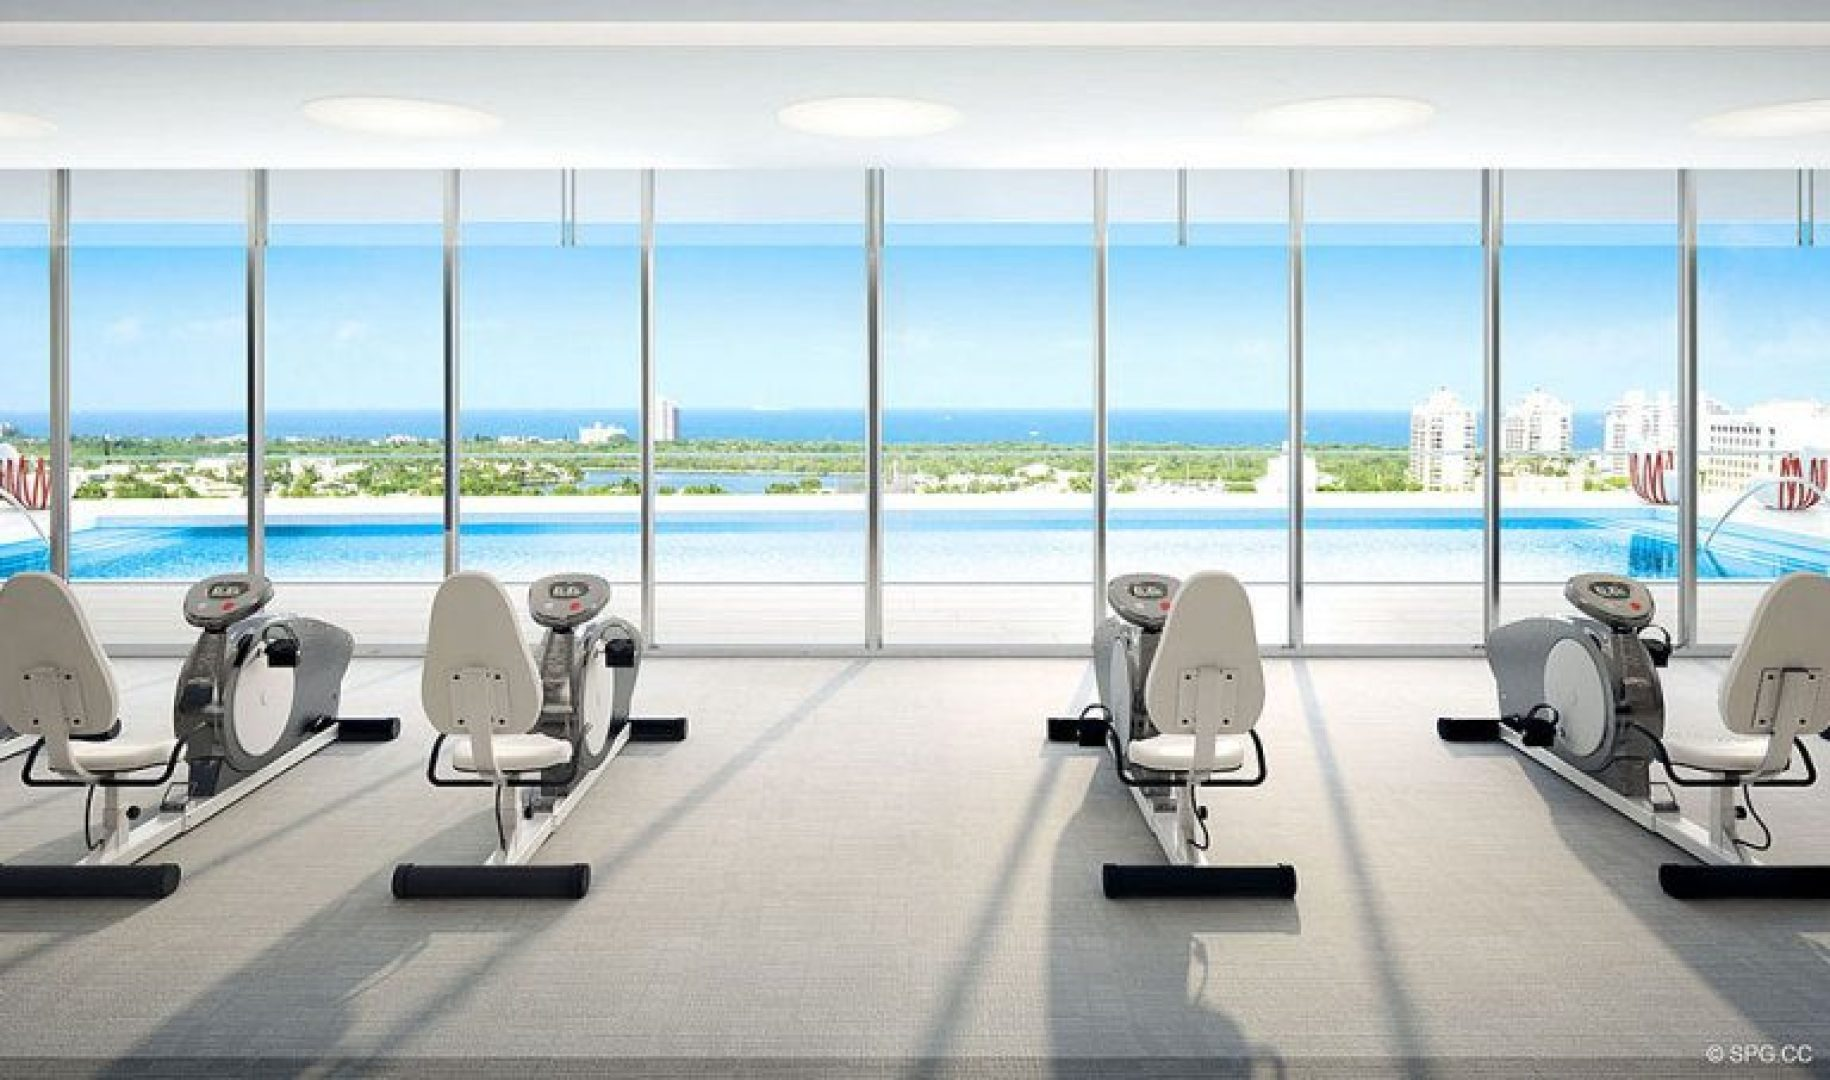 Waterfront Fitness Center Views at Riva, Luxury Waterfront Condos in Fort Lauderdale, Florida 33304.